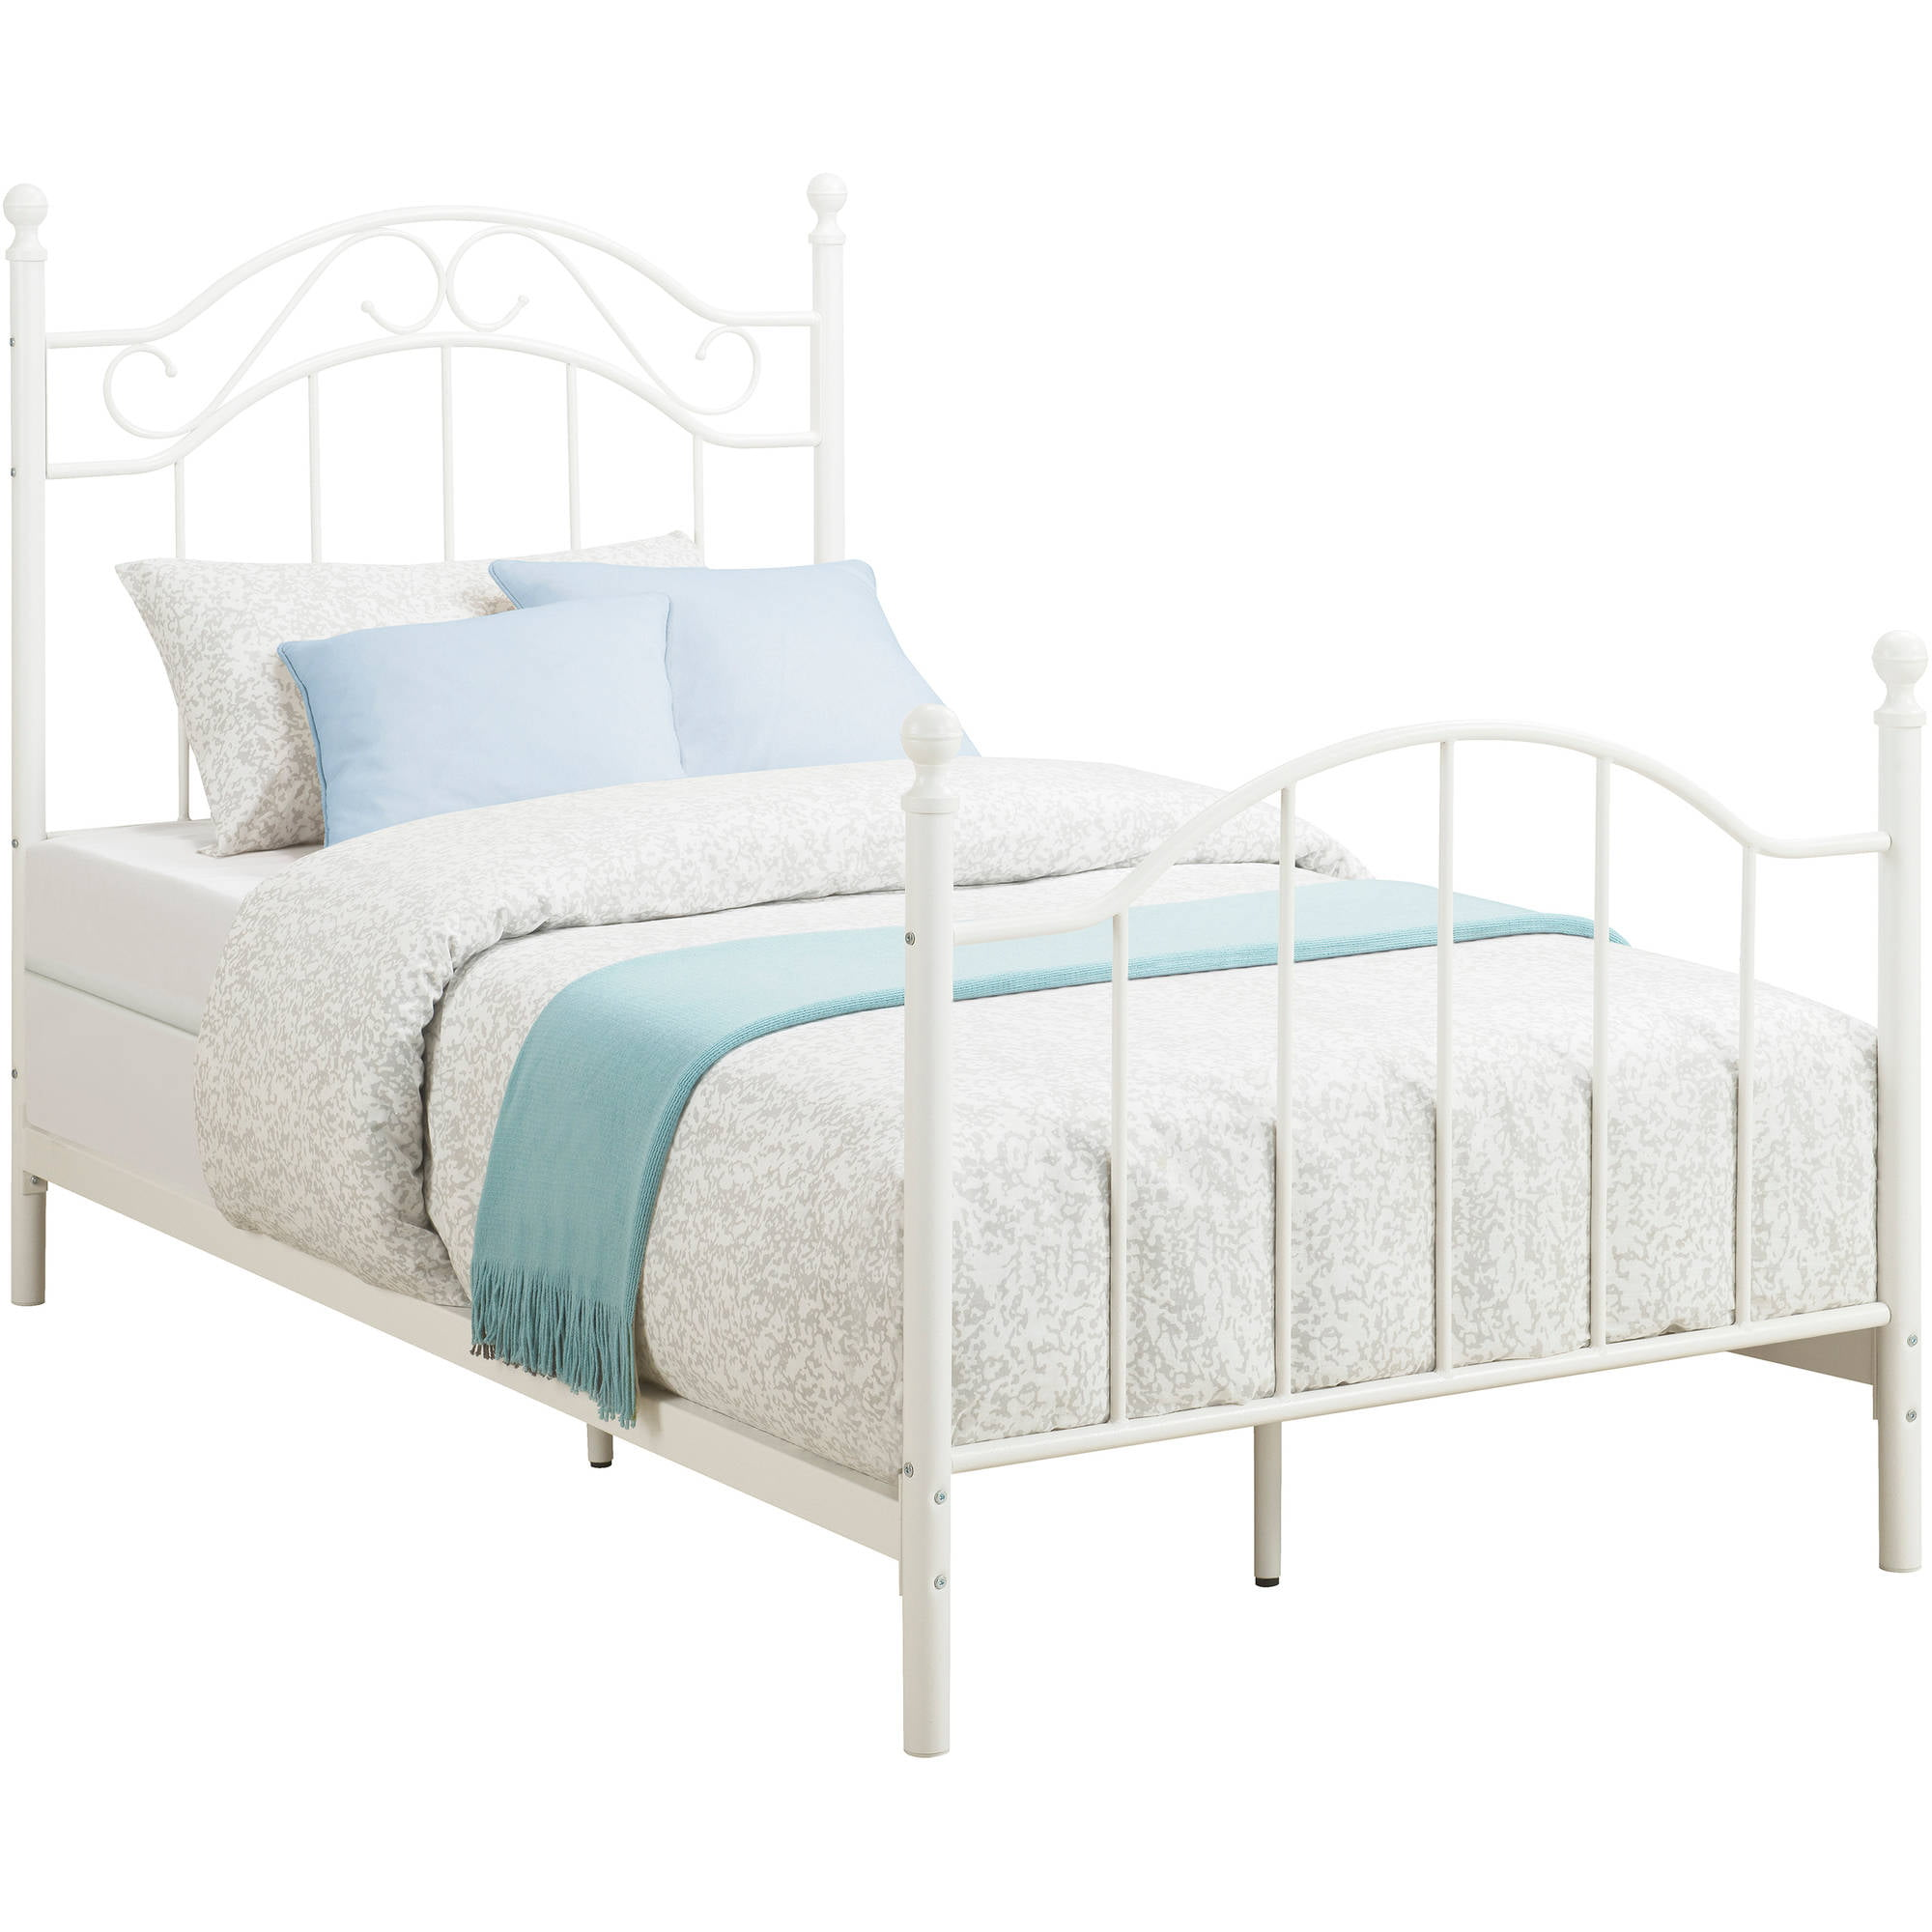 White Twin Bed Frames mainstays twin metal bed - walmart